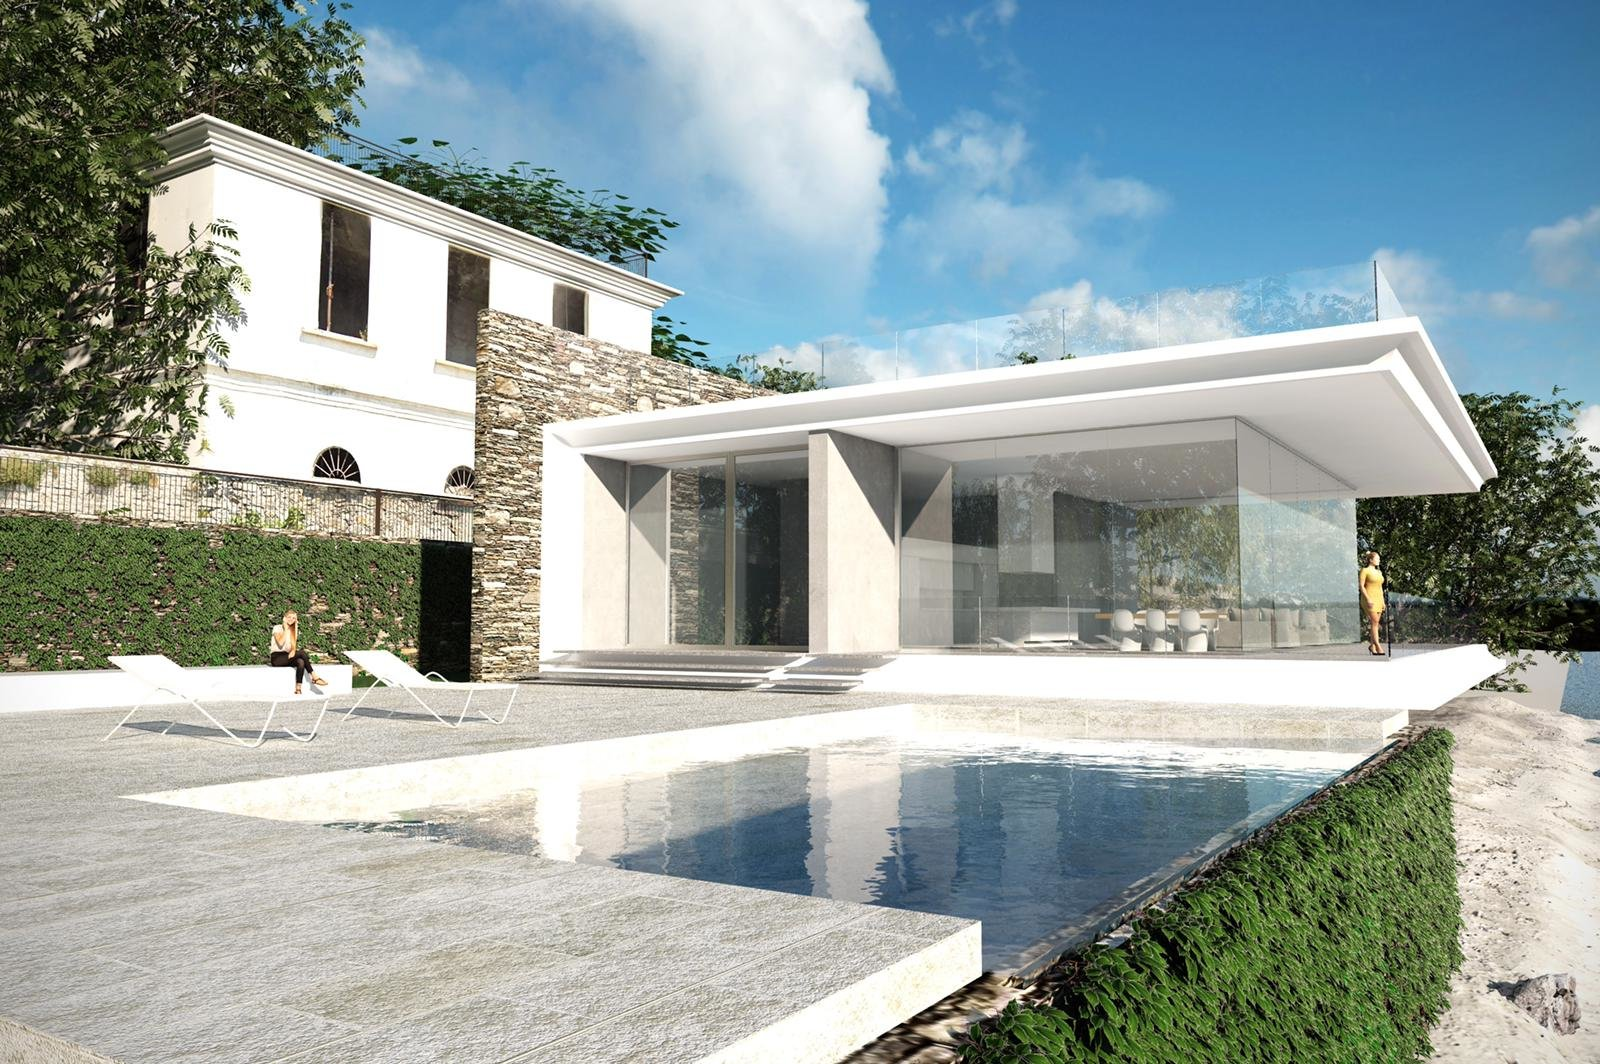 Exclusive modern villa for sale in Verbania - villa with swimming pool